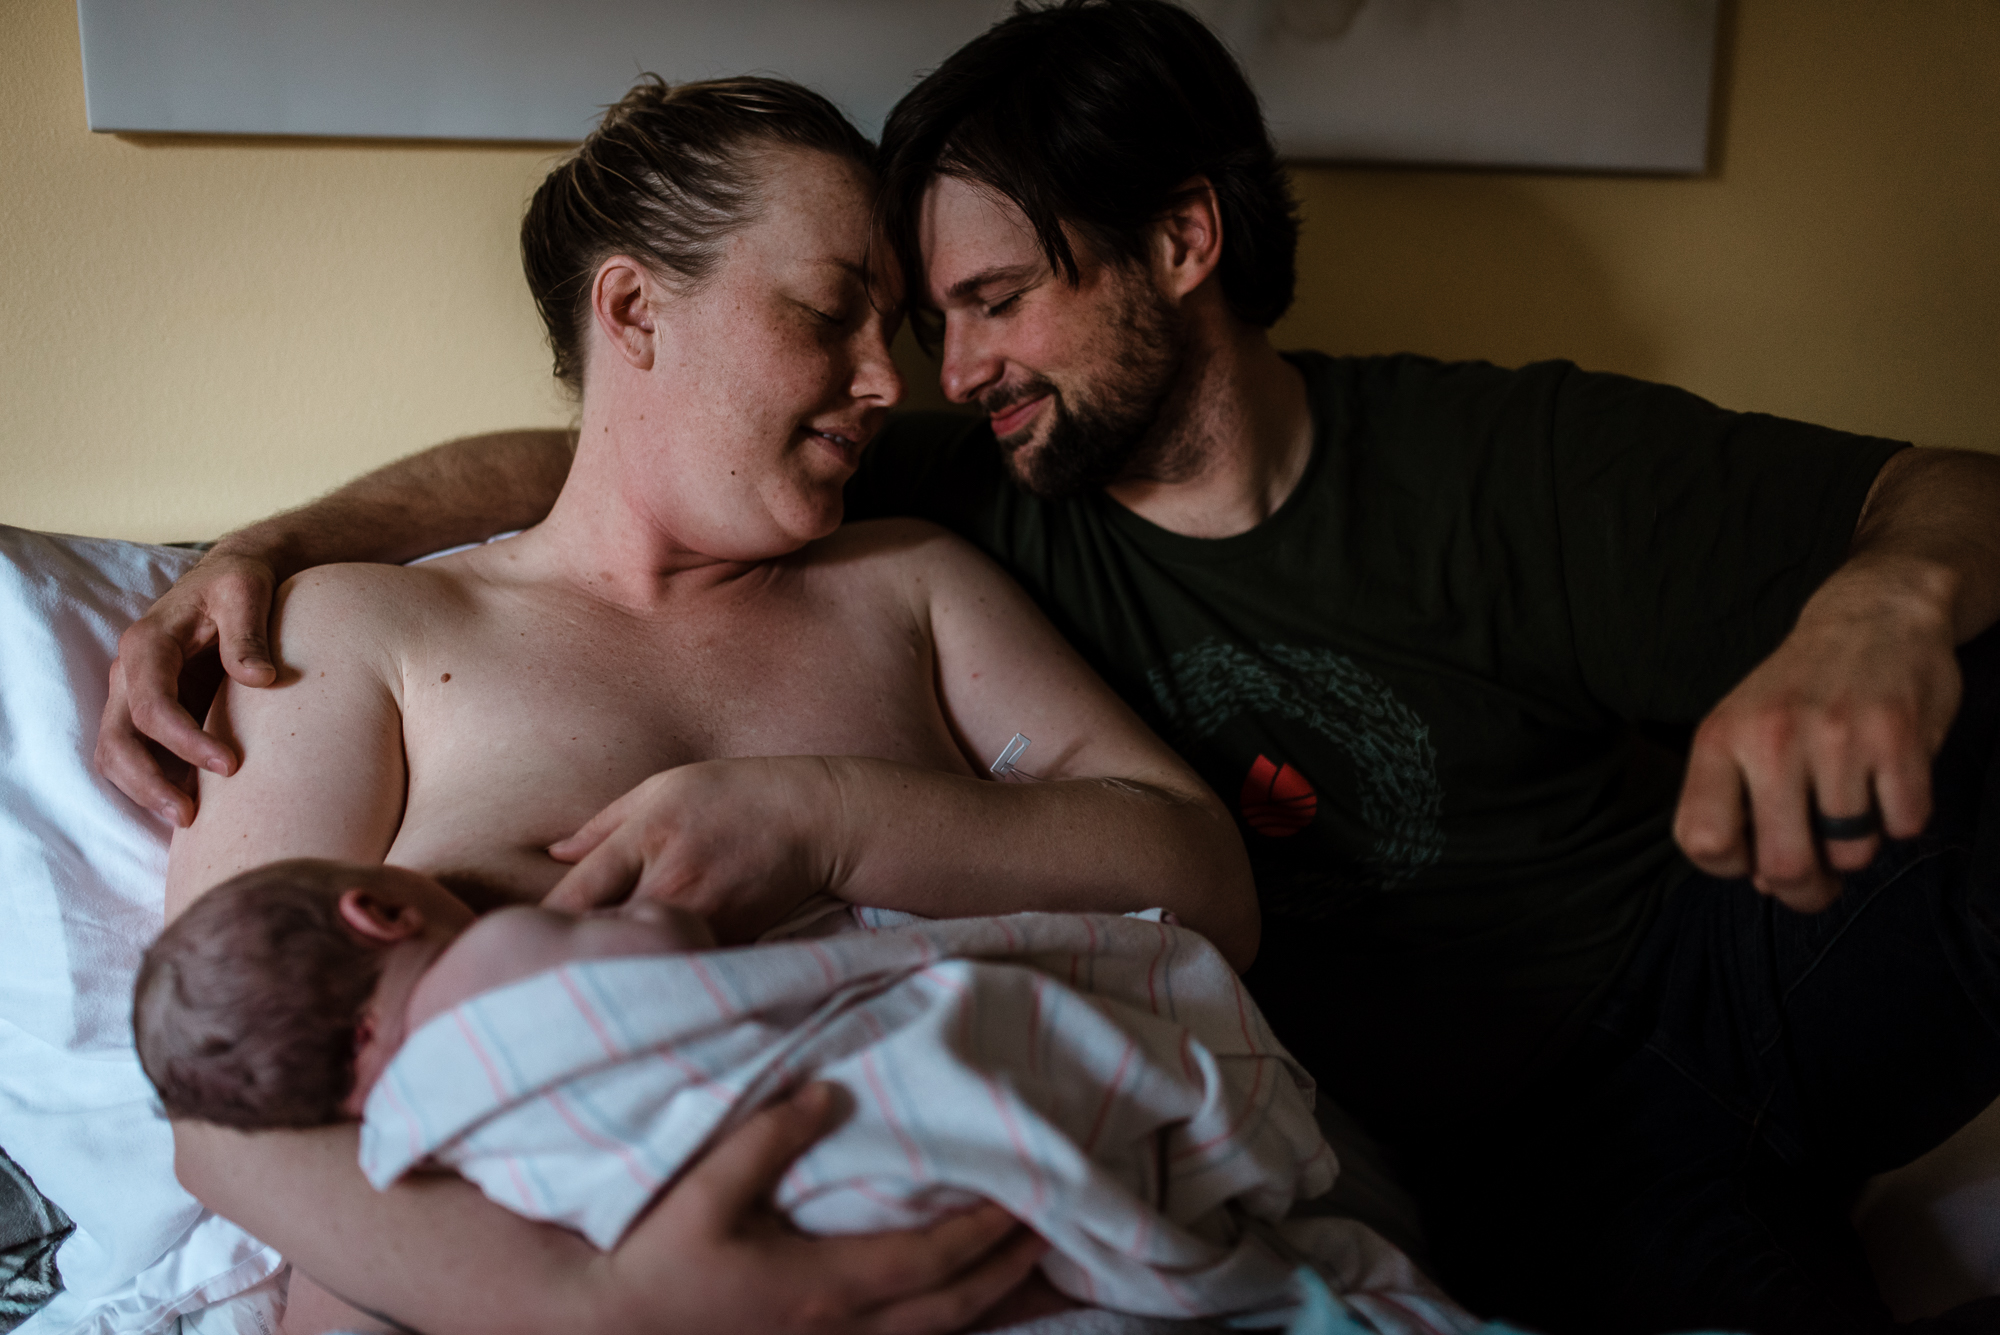 Meredith Westin Photography- Minnesota Birth Stories-March 27, 2019-091136.jpg